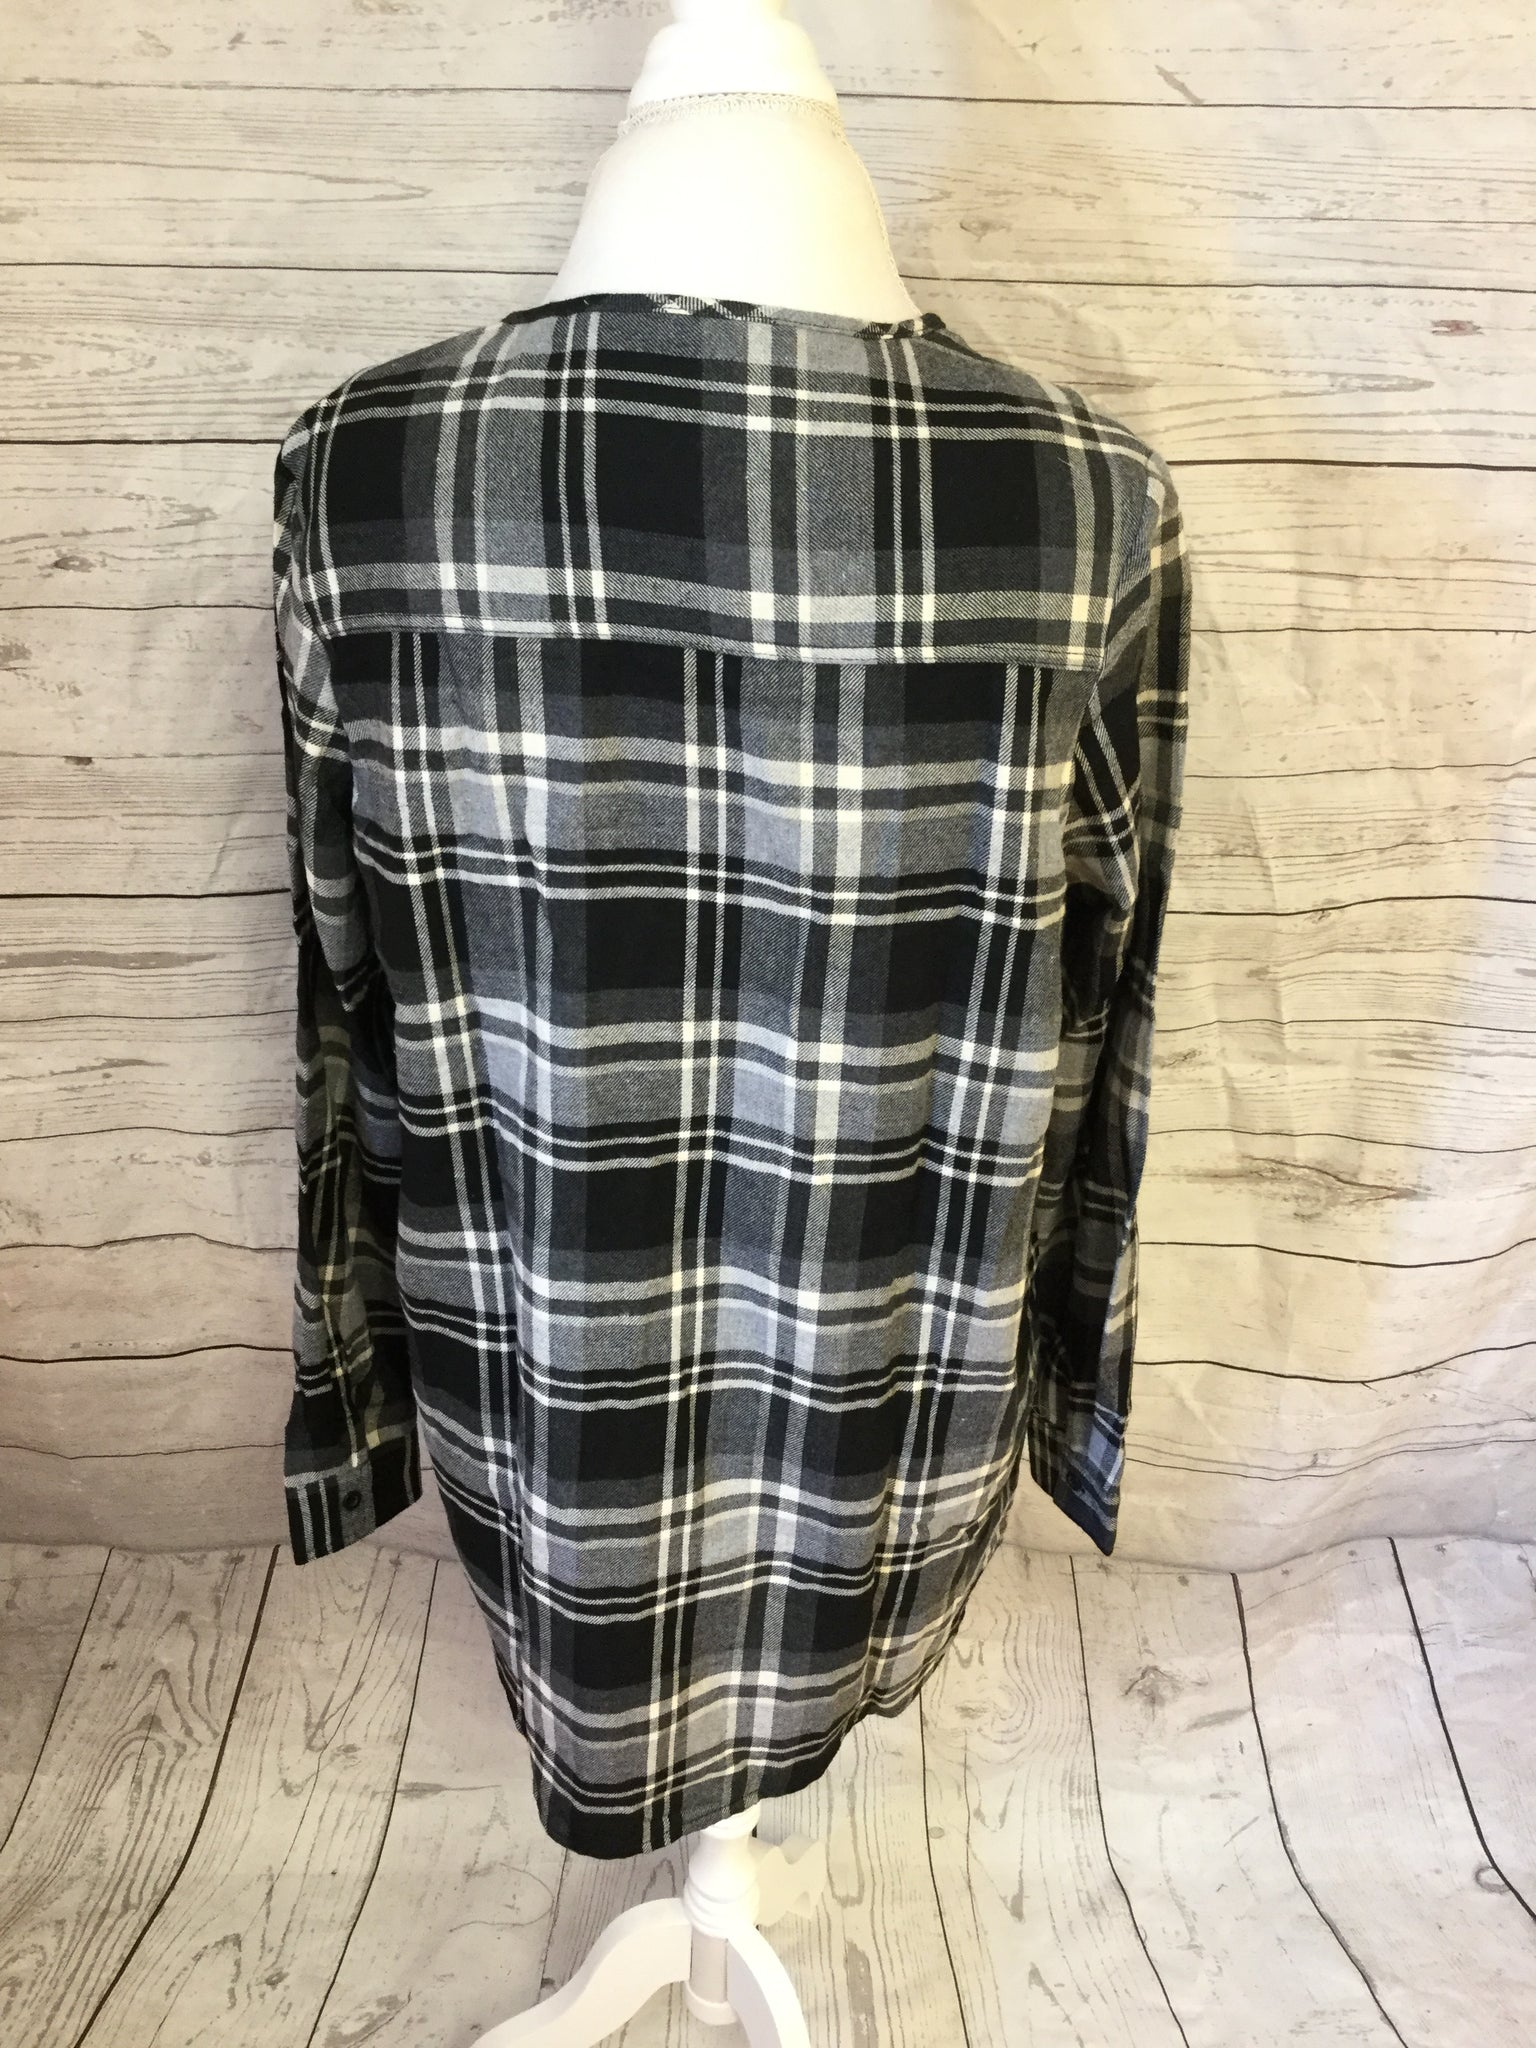 Lace Up Plaid Black and White Flannel To